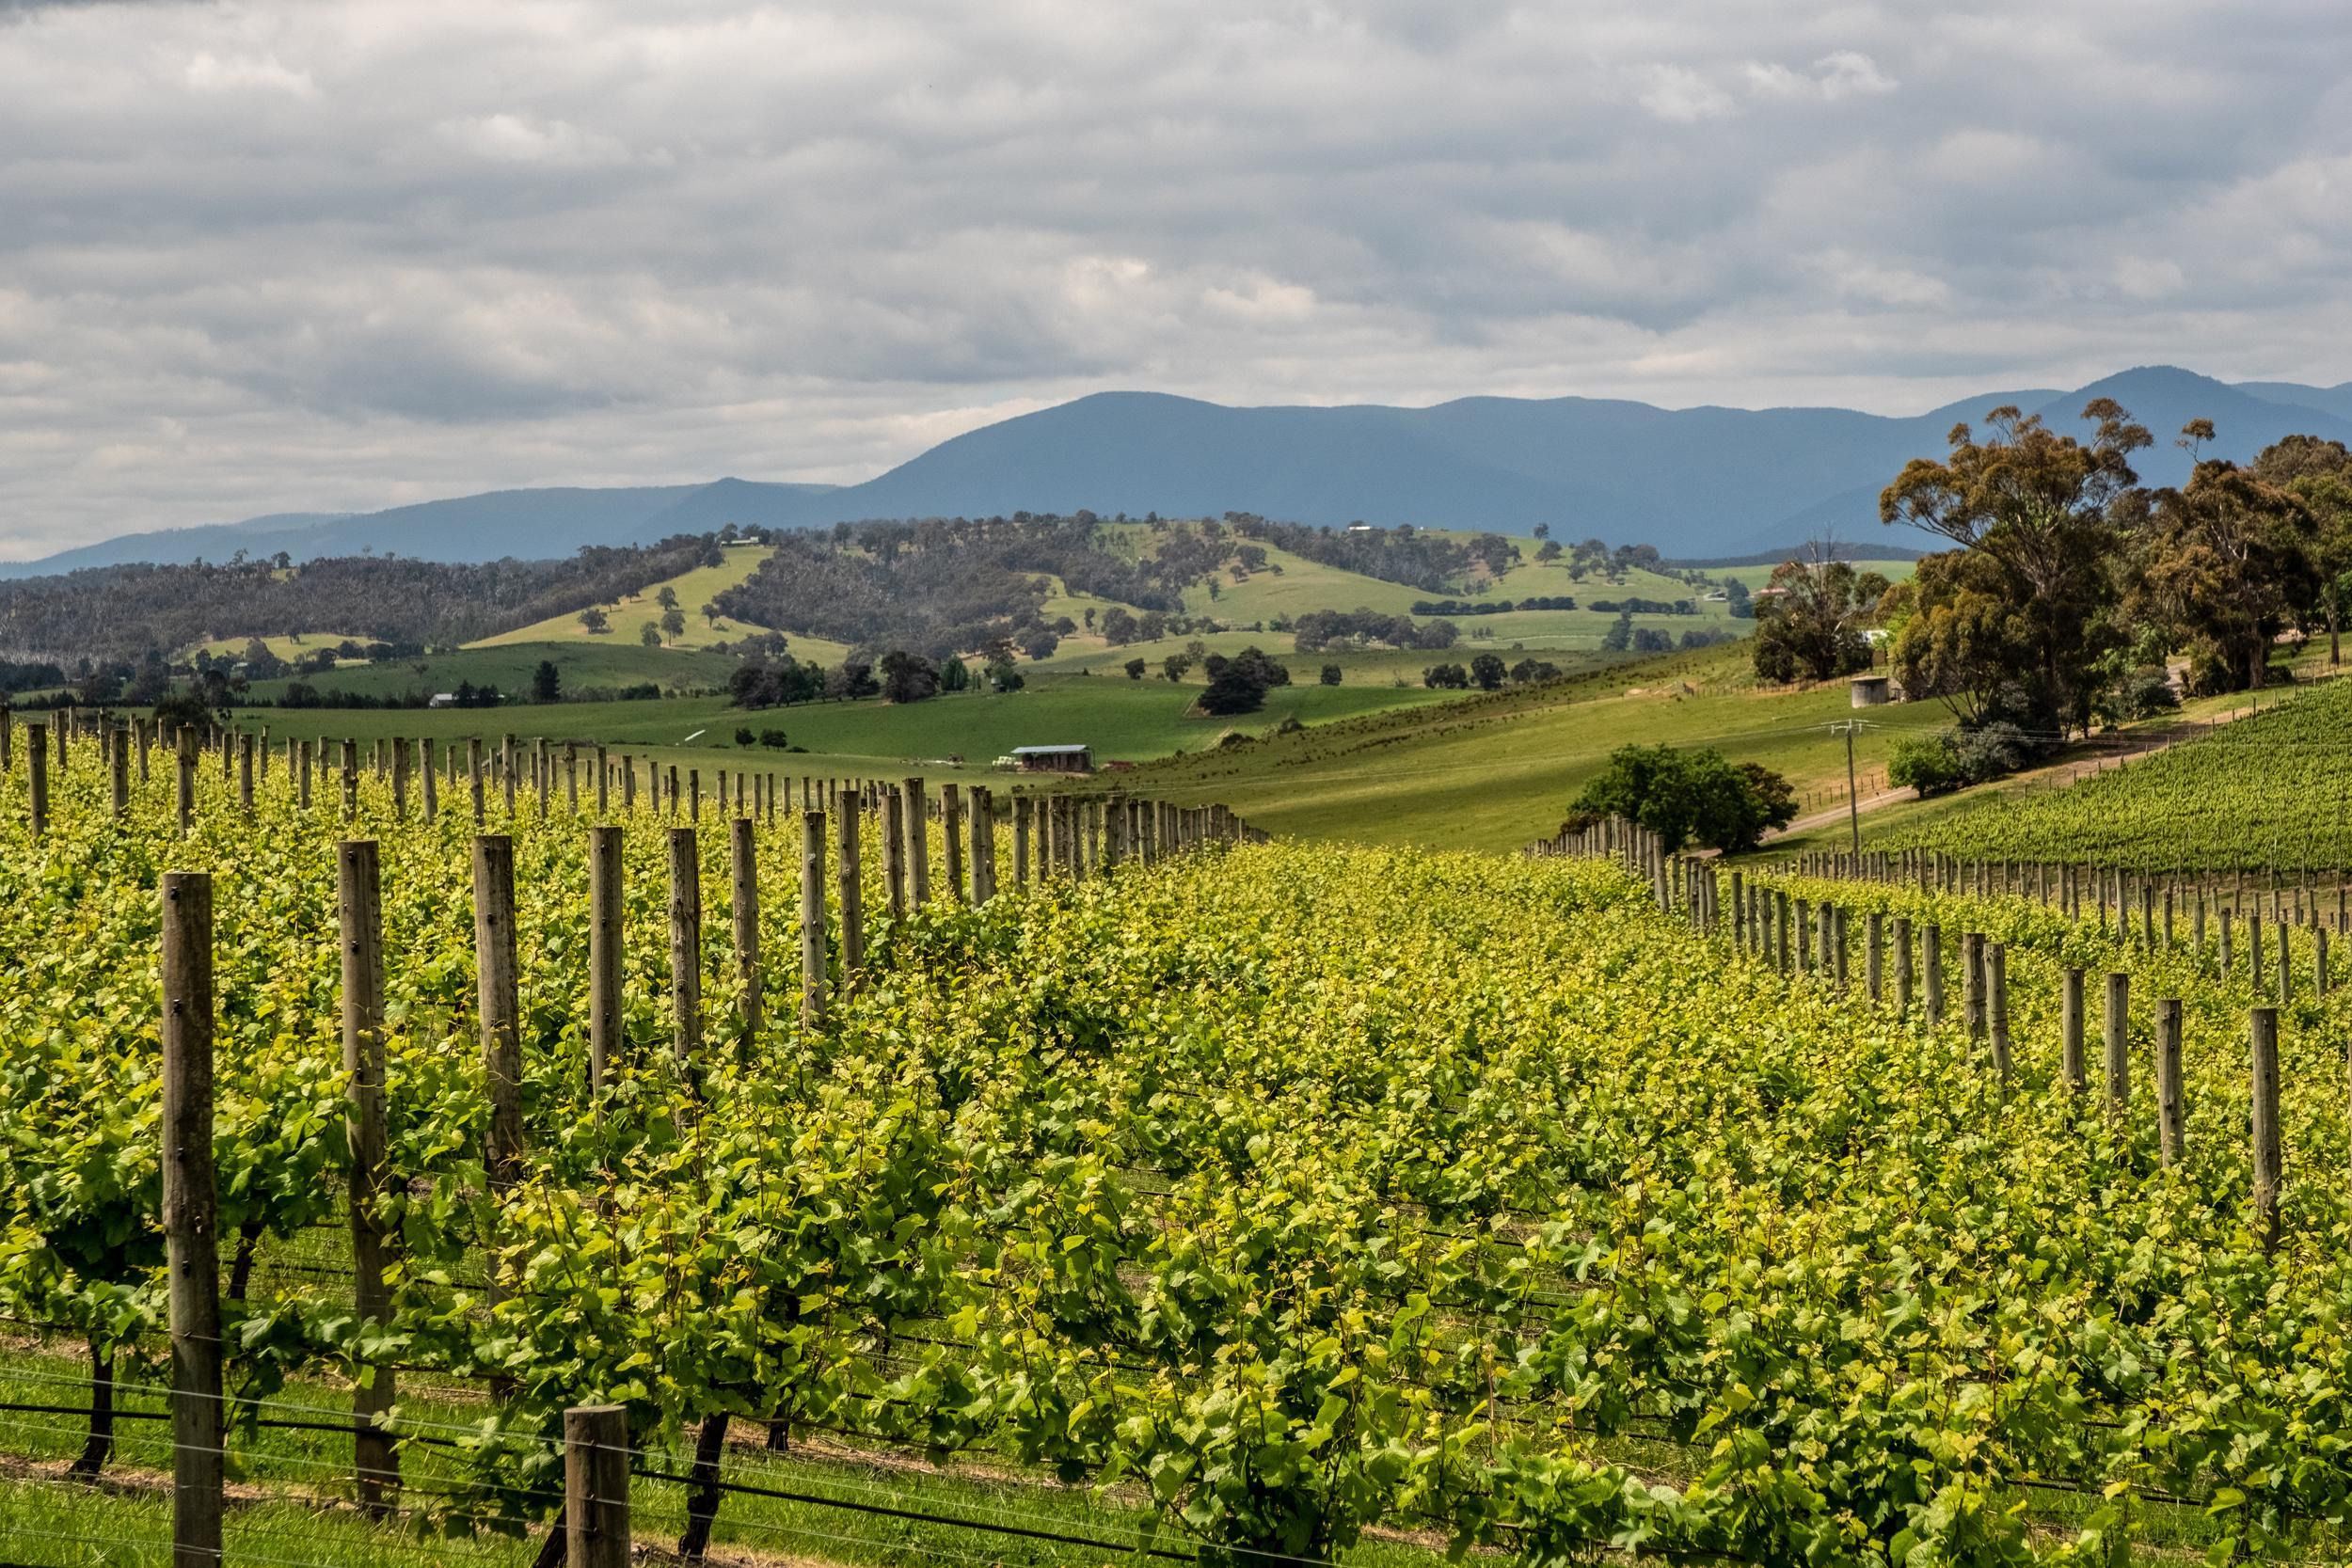 How to Spend 1 Day in the Yarra Valley